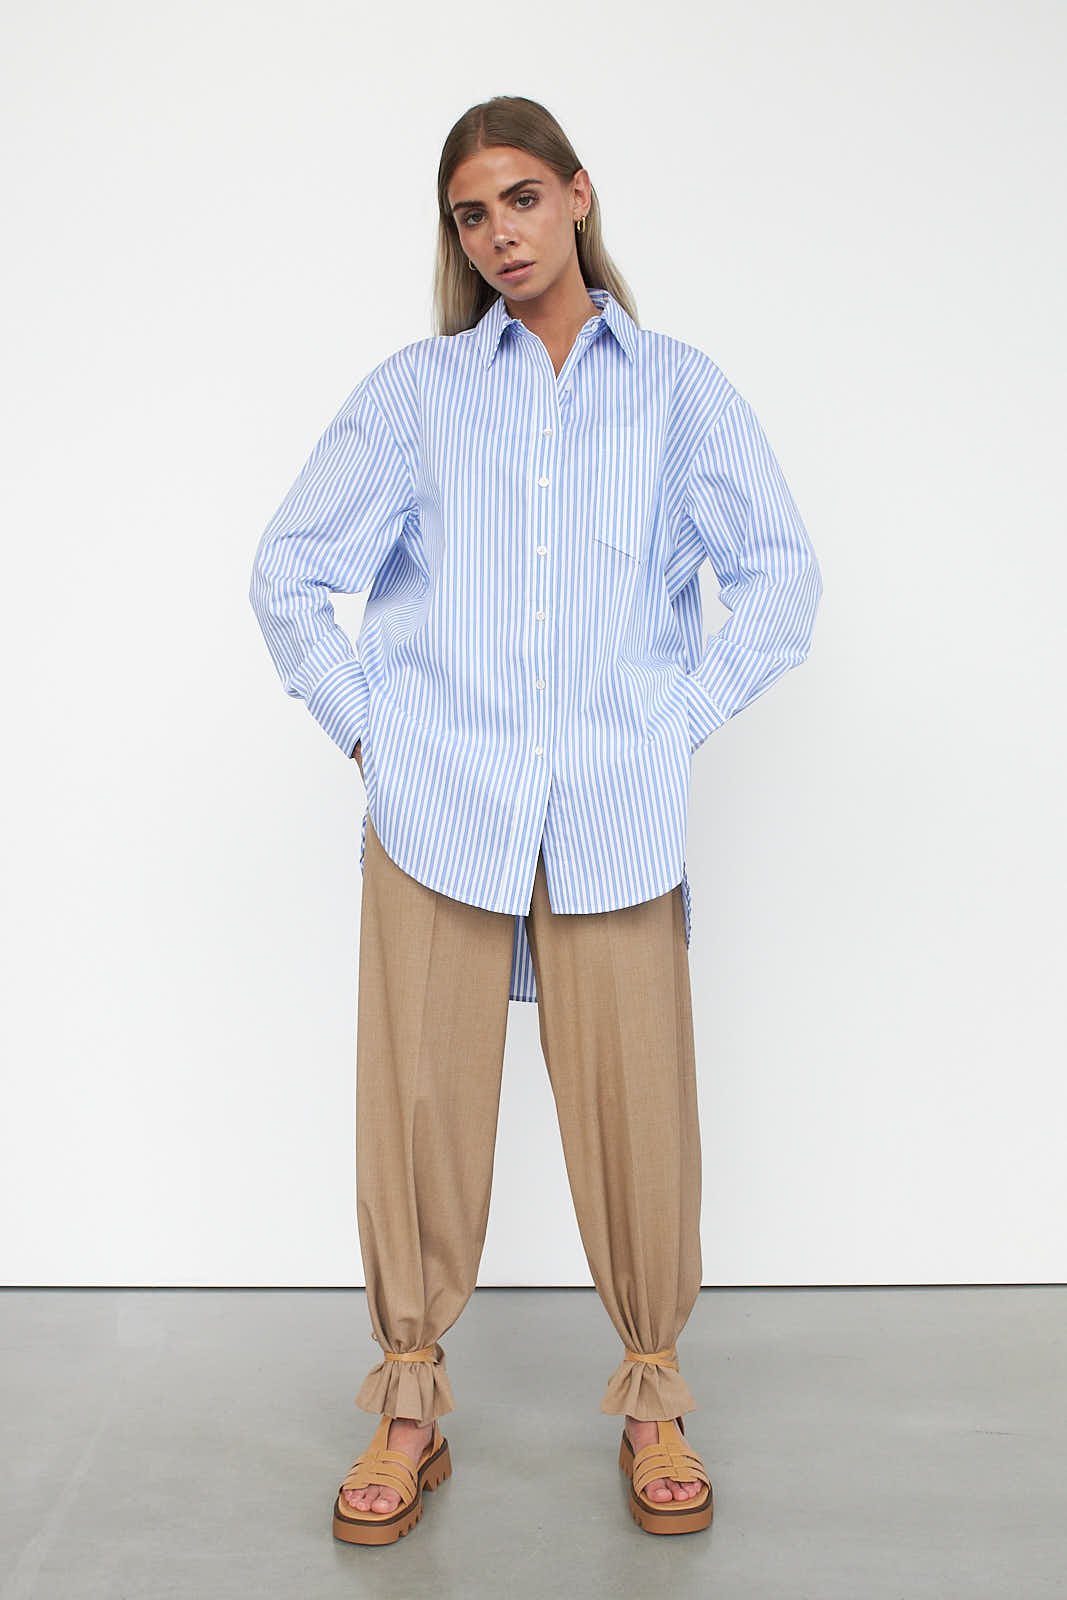 woman wearing shirt and loose trousers